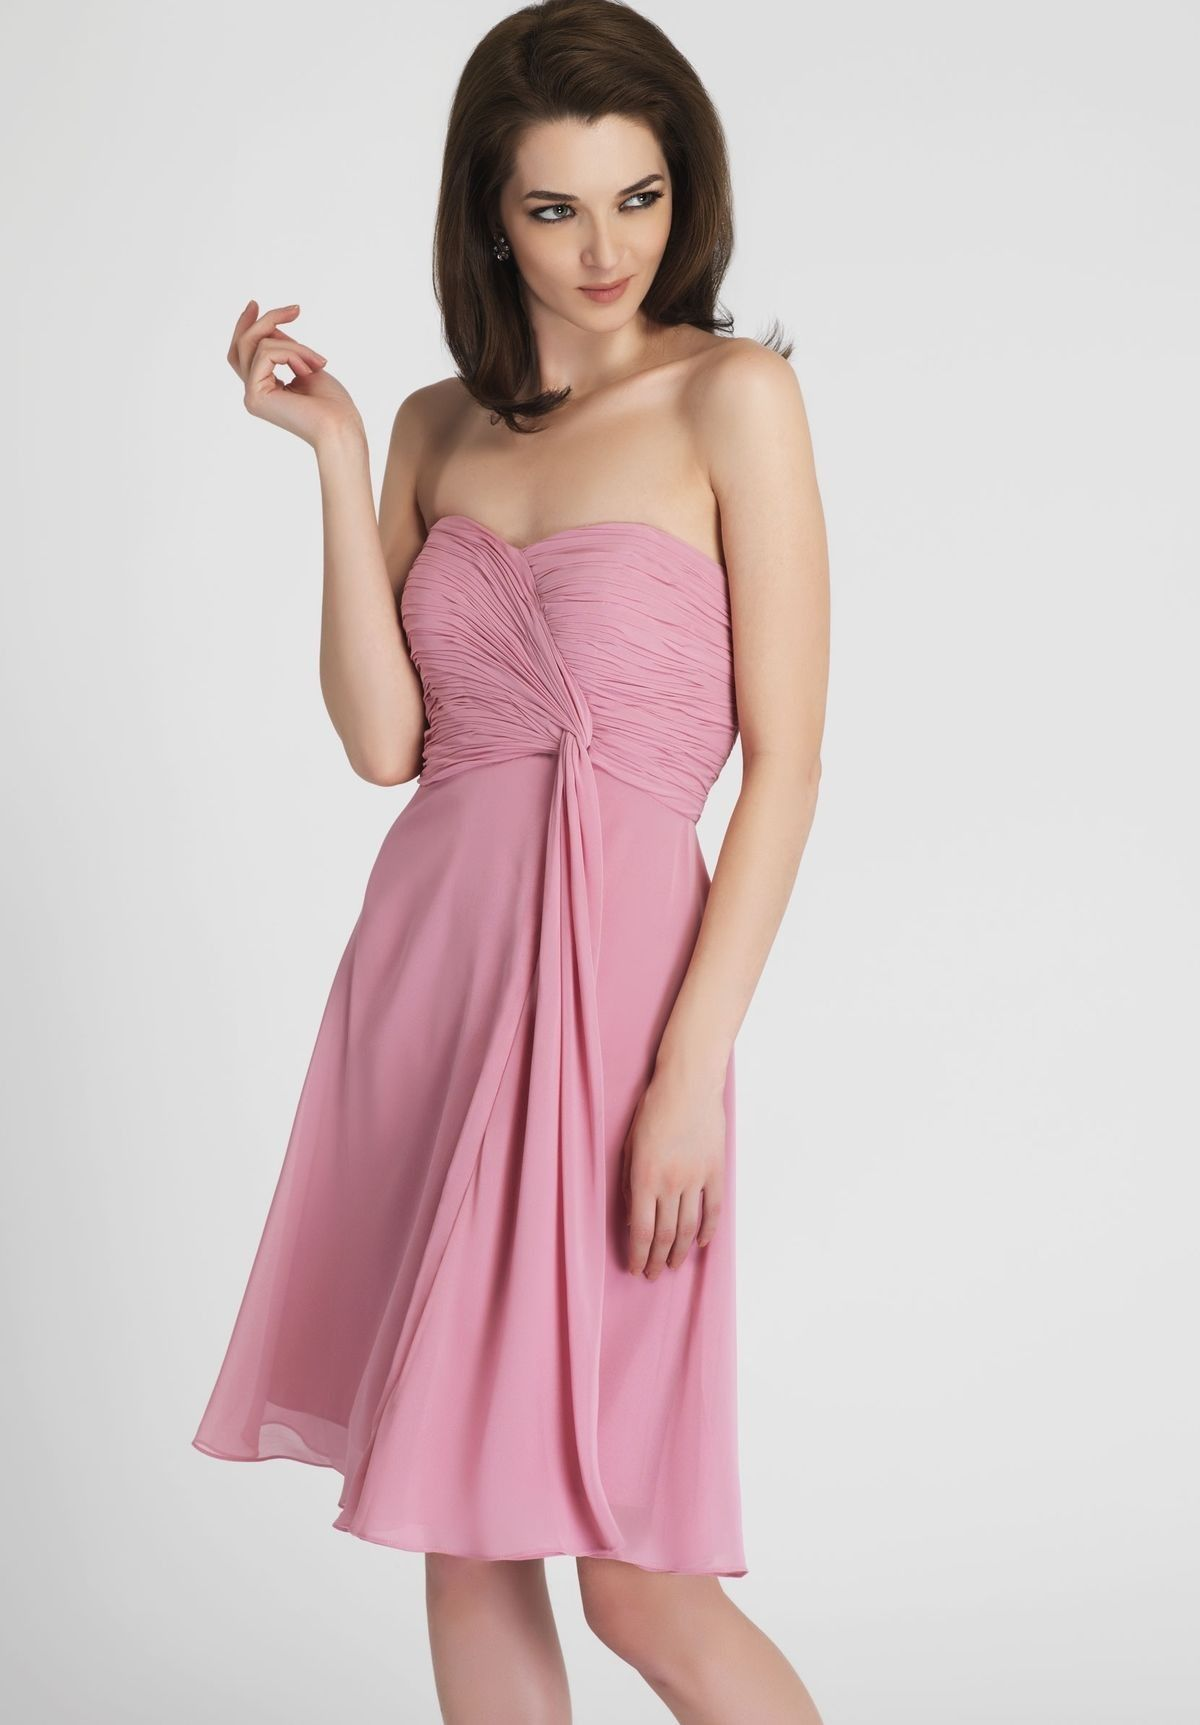 10 Best images about Chiffon bridesmaid dresses on Pinterest  One ...